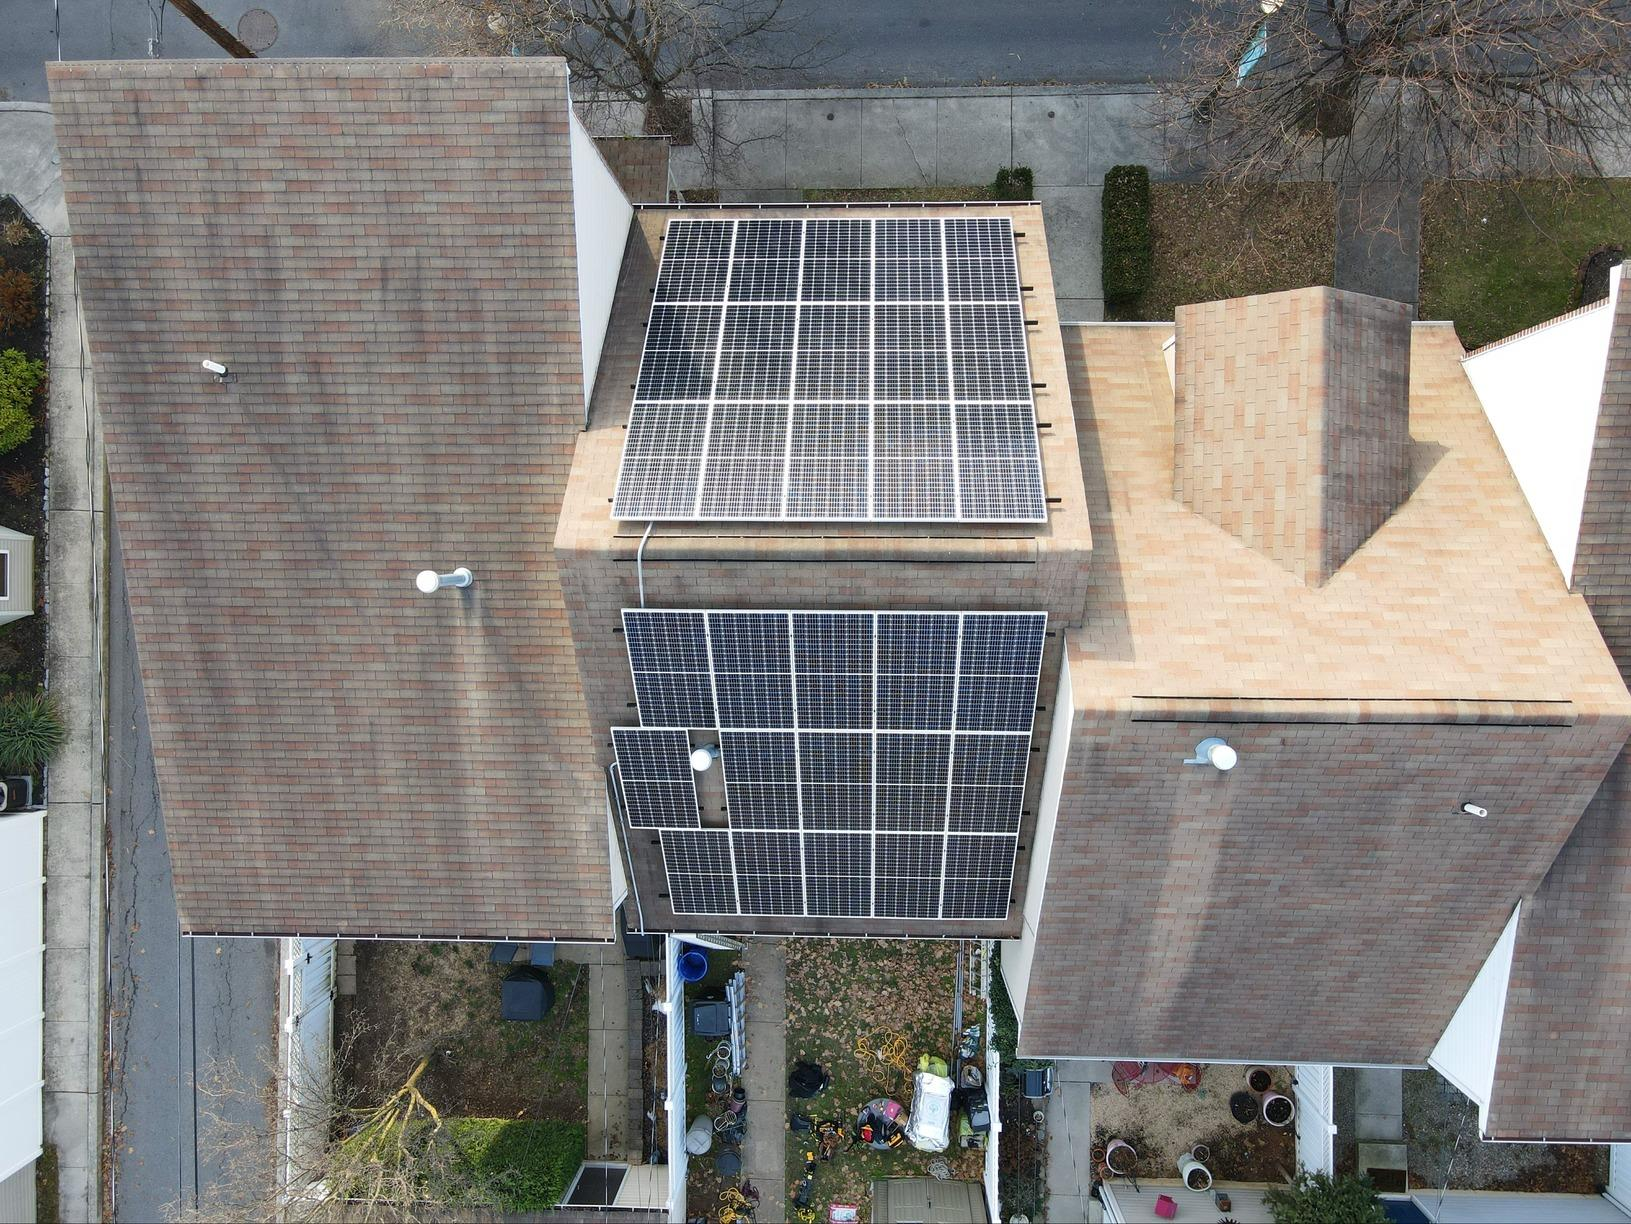 Robert and Barbara's Solar Installation Done in Harrisburg, Pa - After Photo